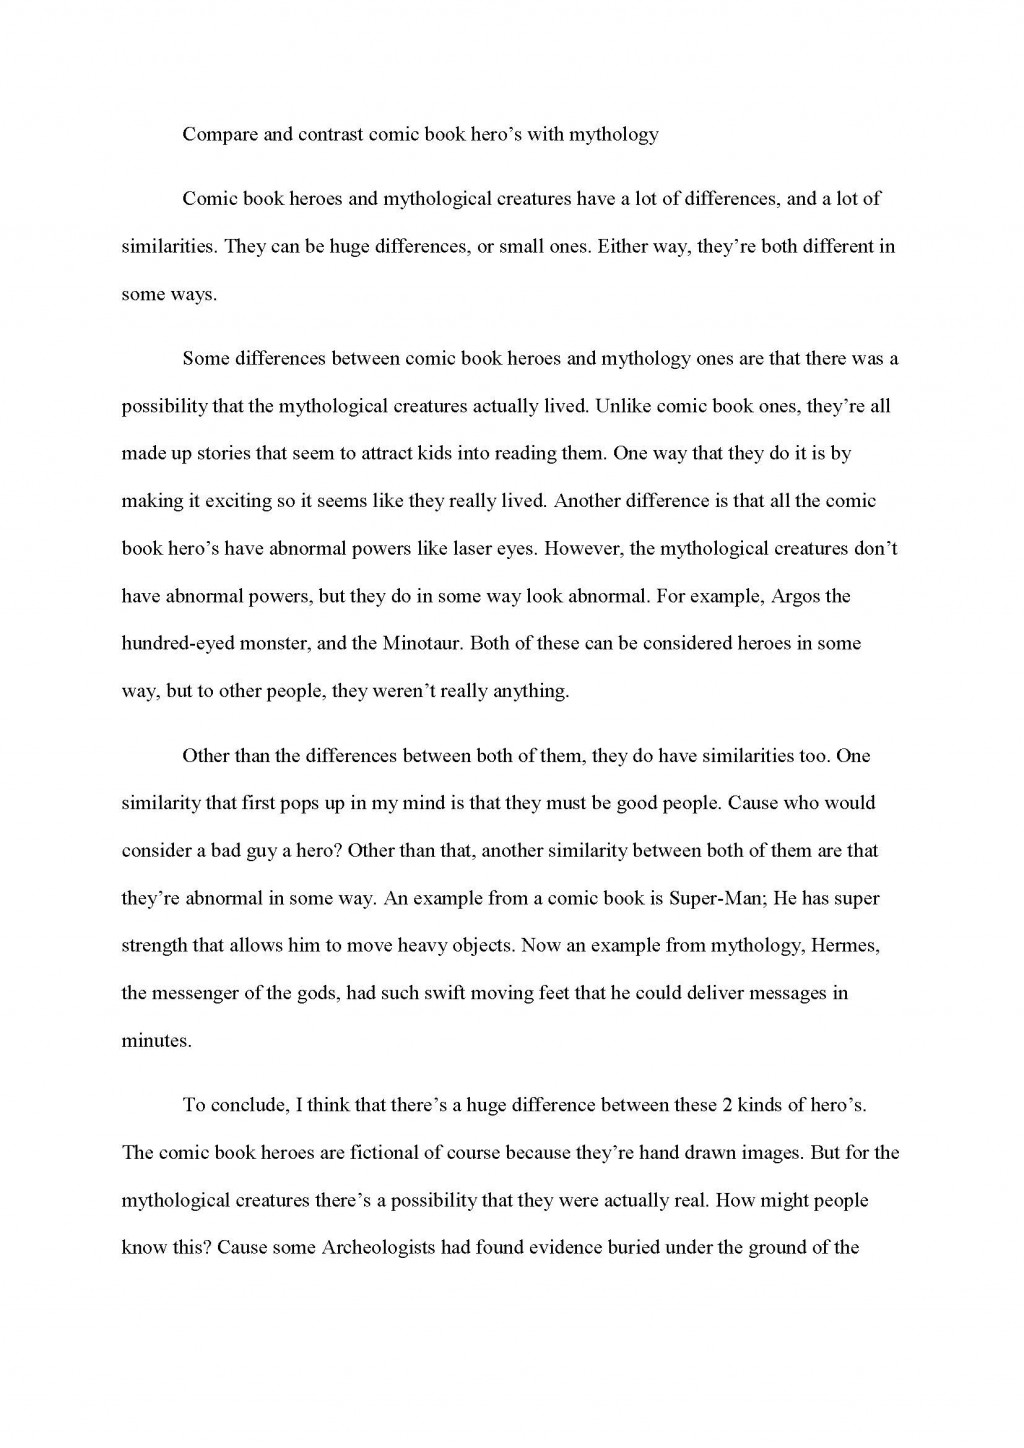 007 How To Outline Compare And Contrast Essay Sampleid8072 Awesome A Create An For Large